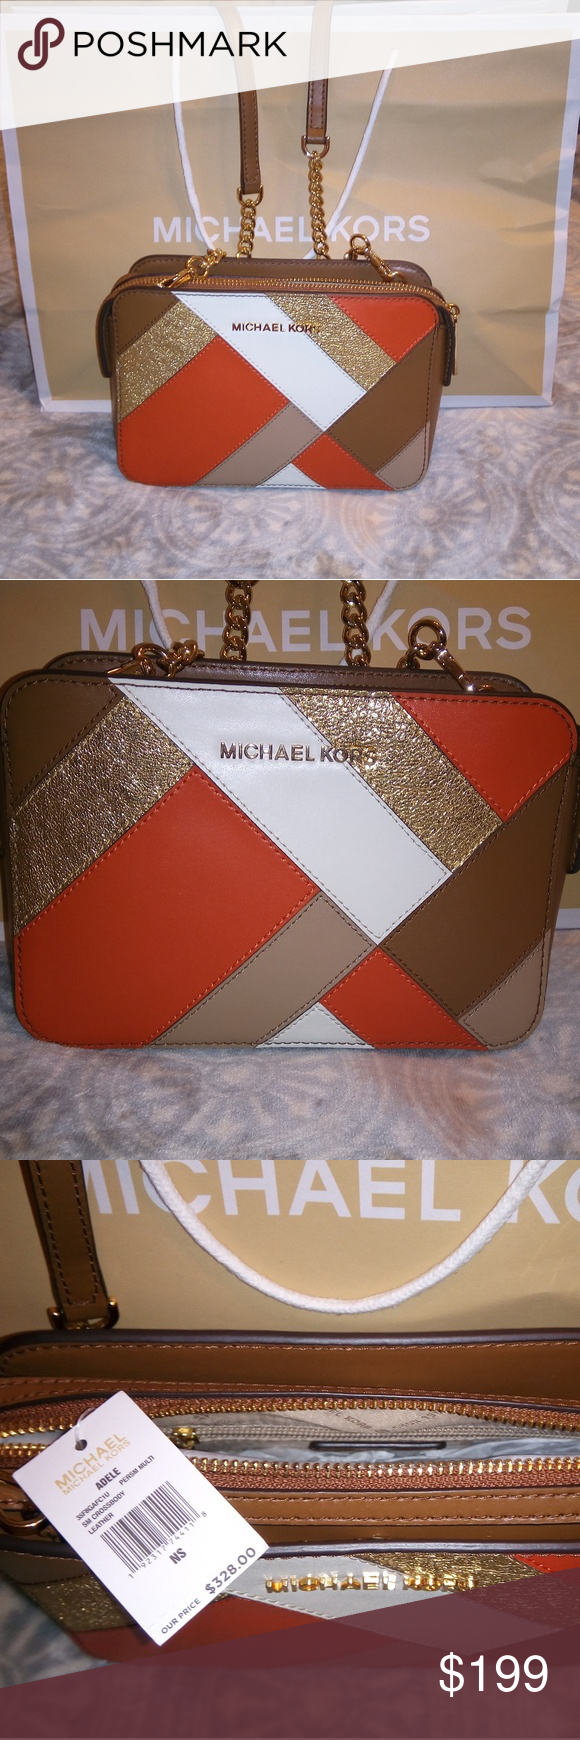 698fdcddba4f Michael Kors Crossbody This is for a NWT Michael Kors Adele Crossbody.  Measurements: 10.5'W x 6.5'H 100% Leather Adjustable strap 22 3/4 in - 25  1/4 in ...